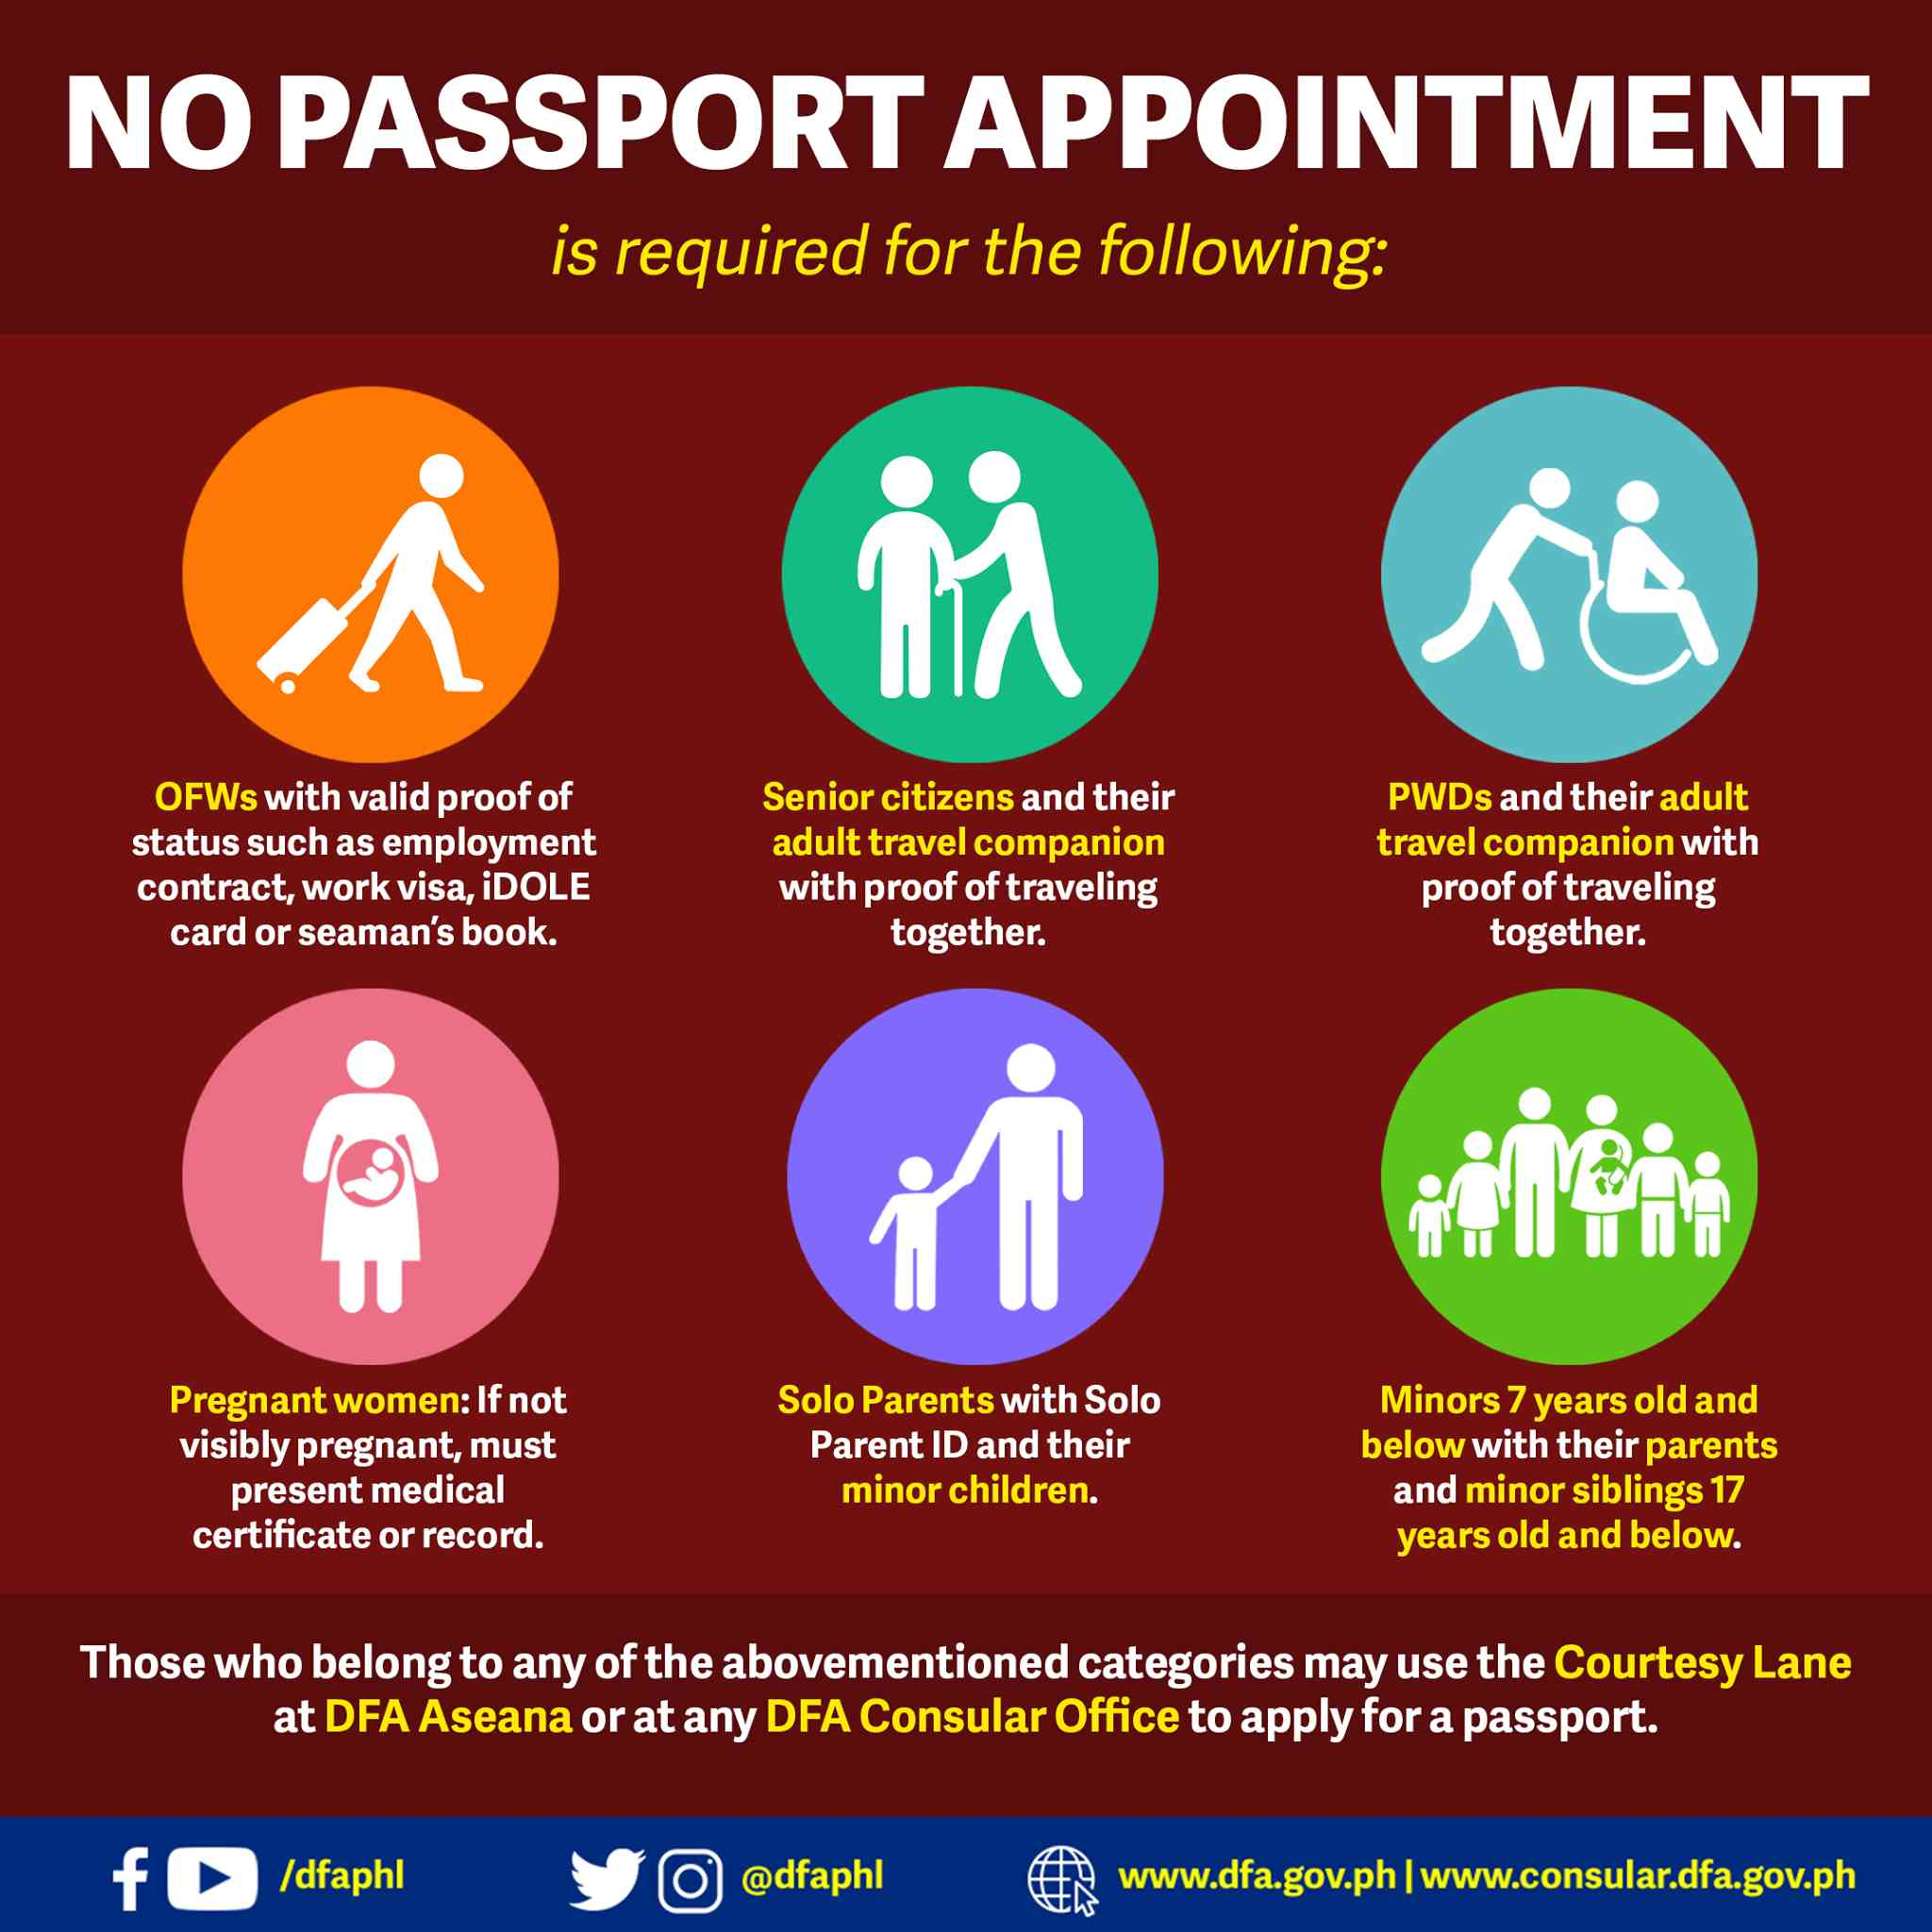 dfa passport priority lane